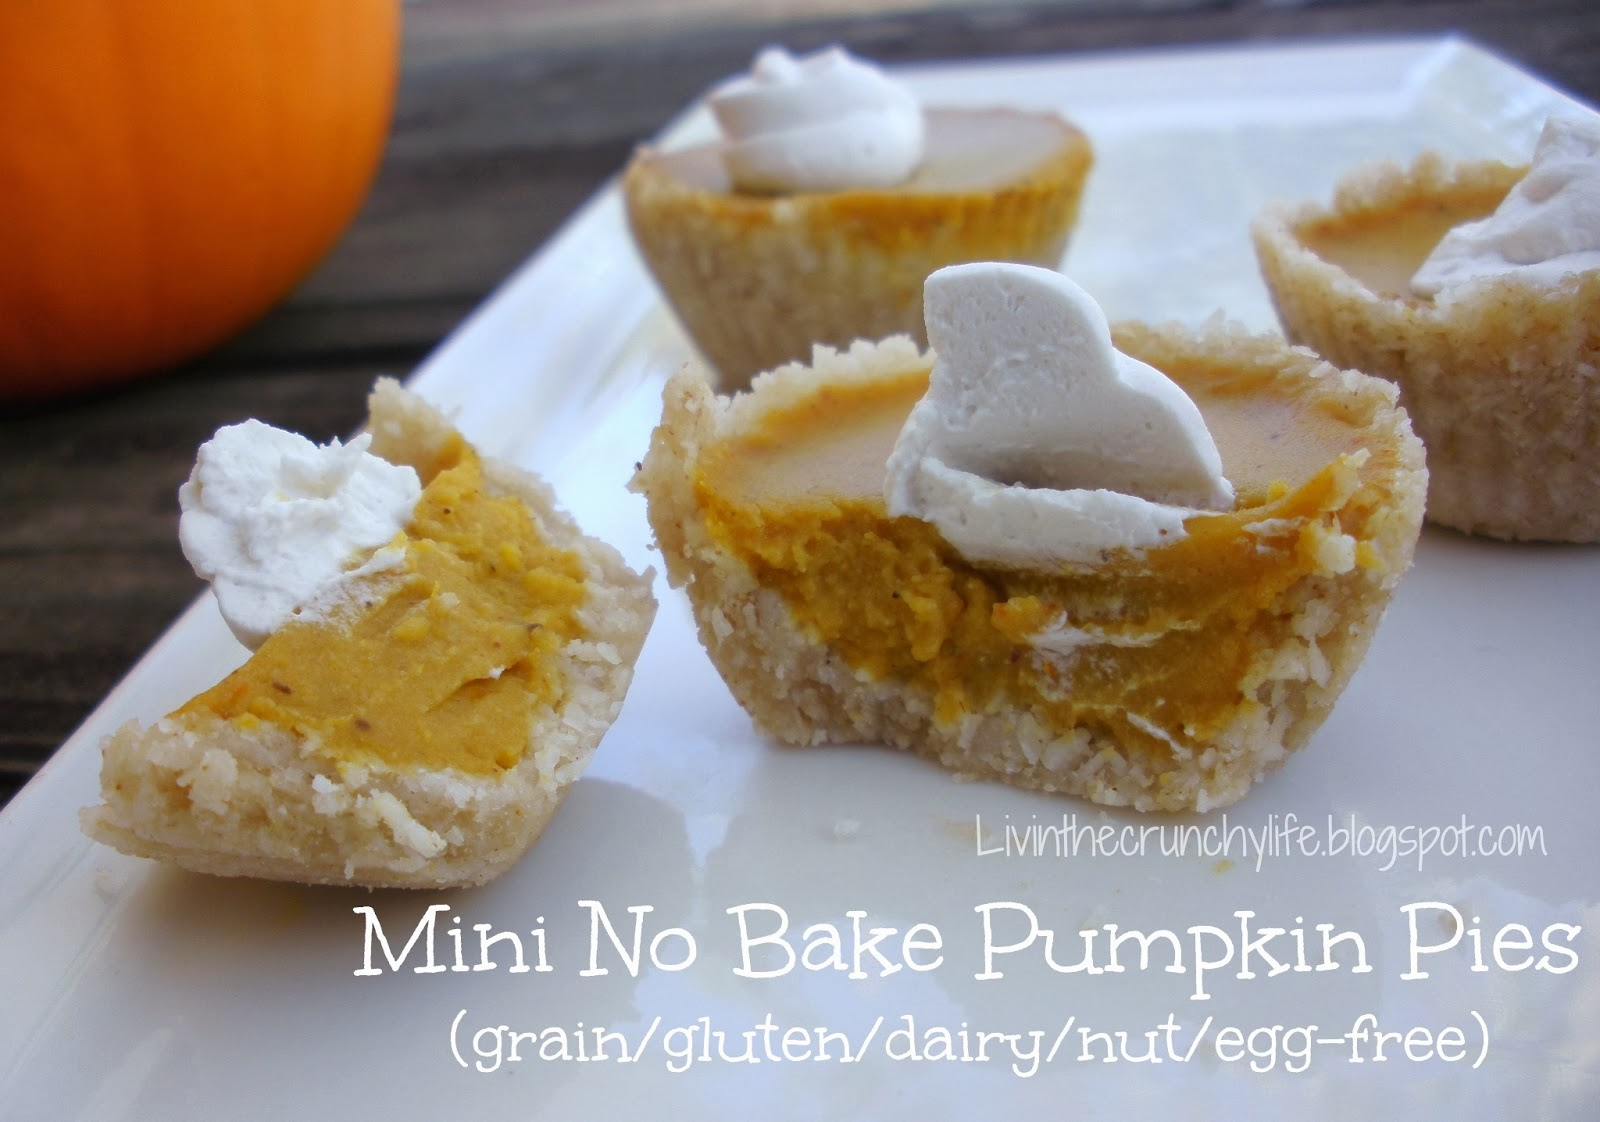 Mini No Bake Pumpkin Pies with Coconut Whipped Cream (grain, gluten, nut, egg-free)